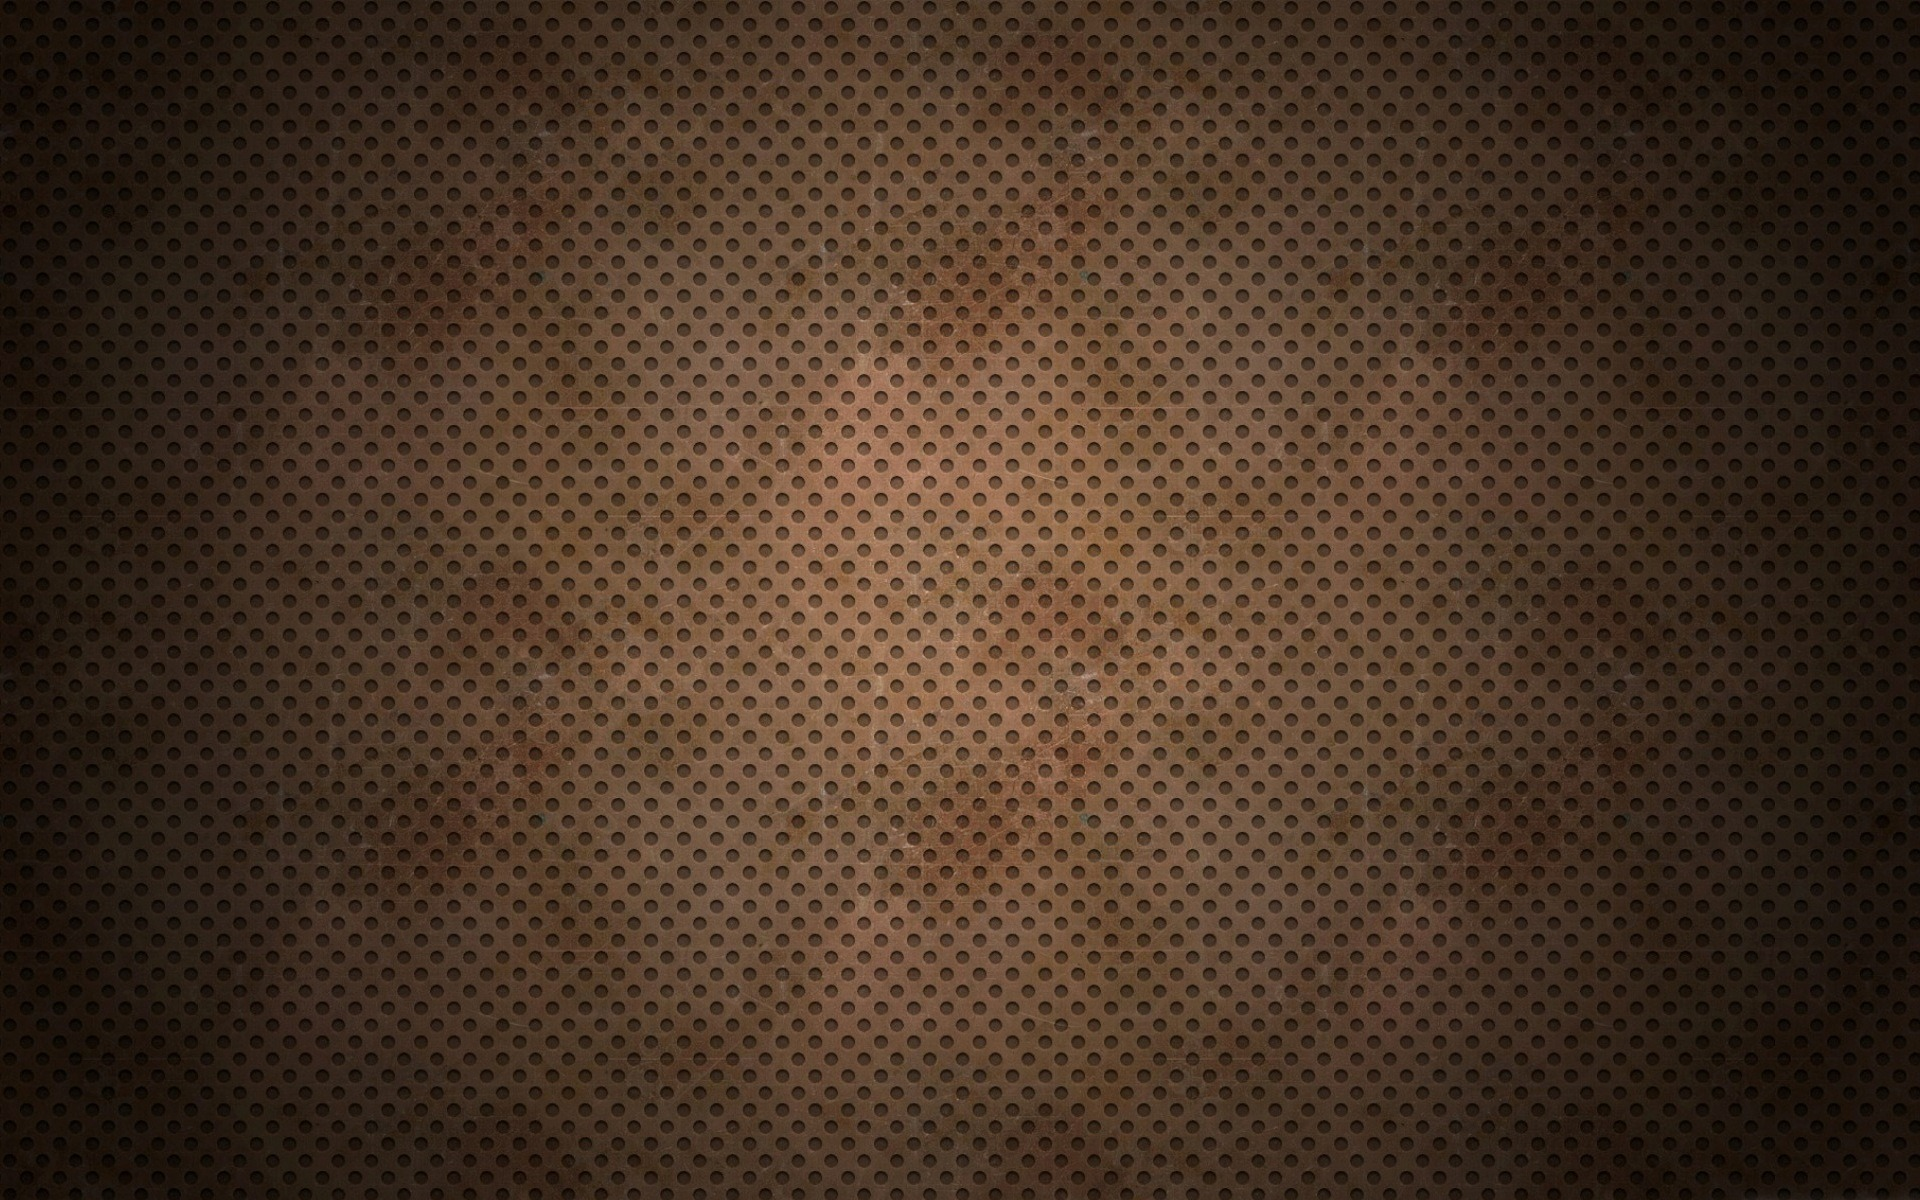 Brown Wallpaper HD Background